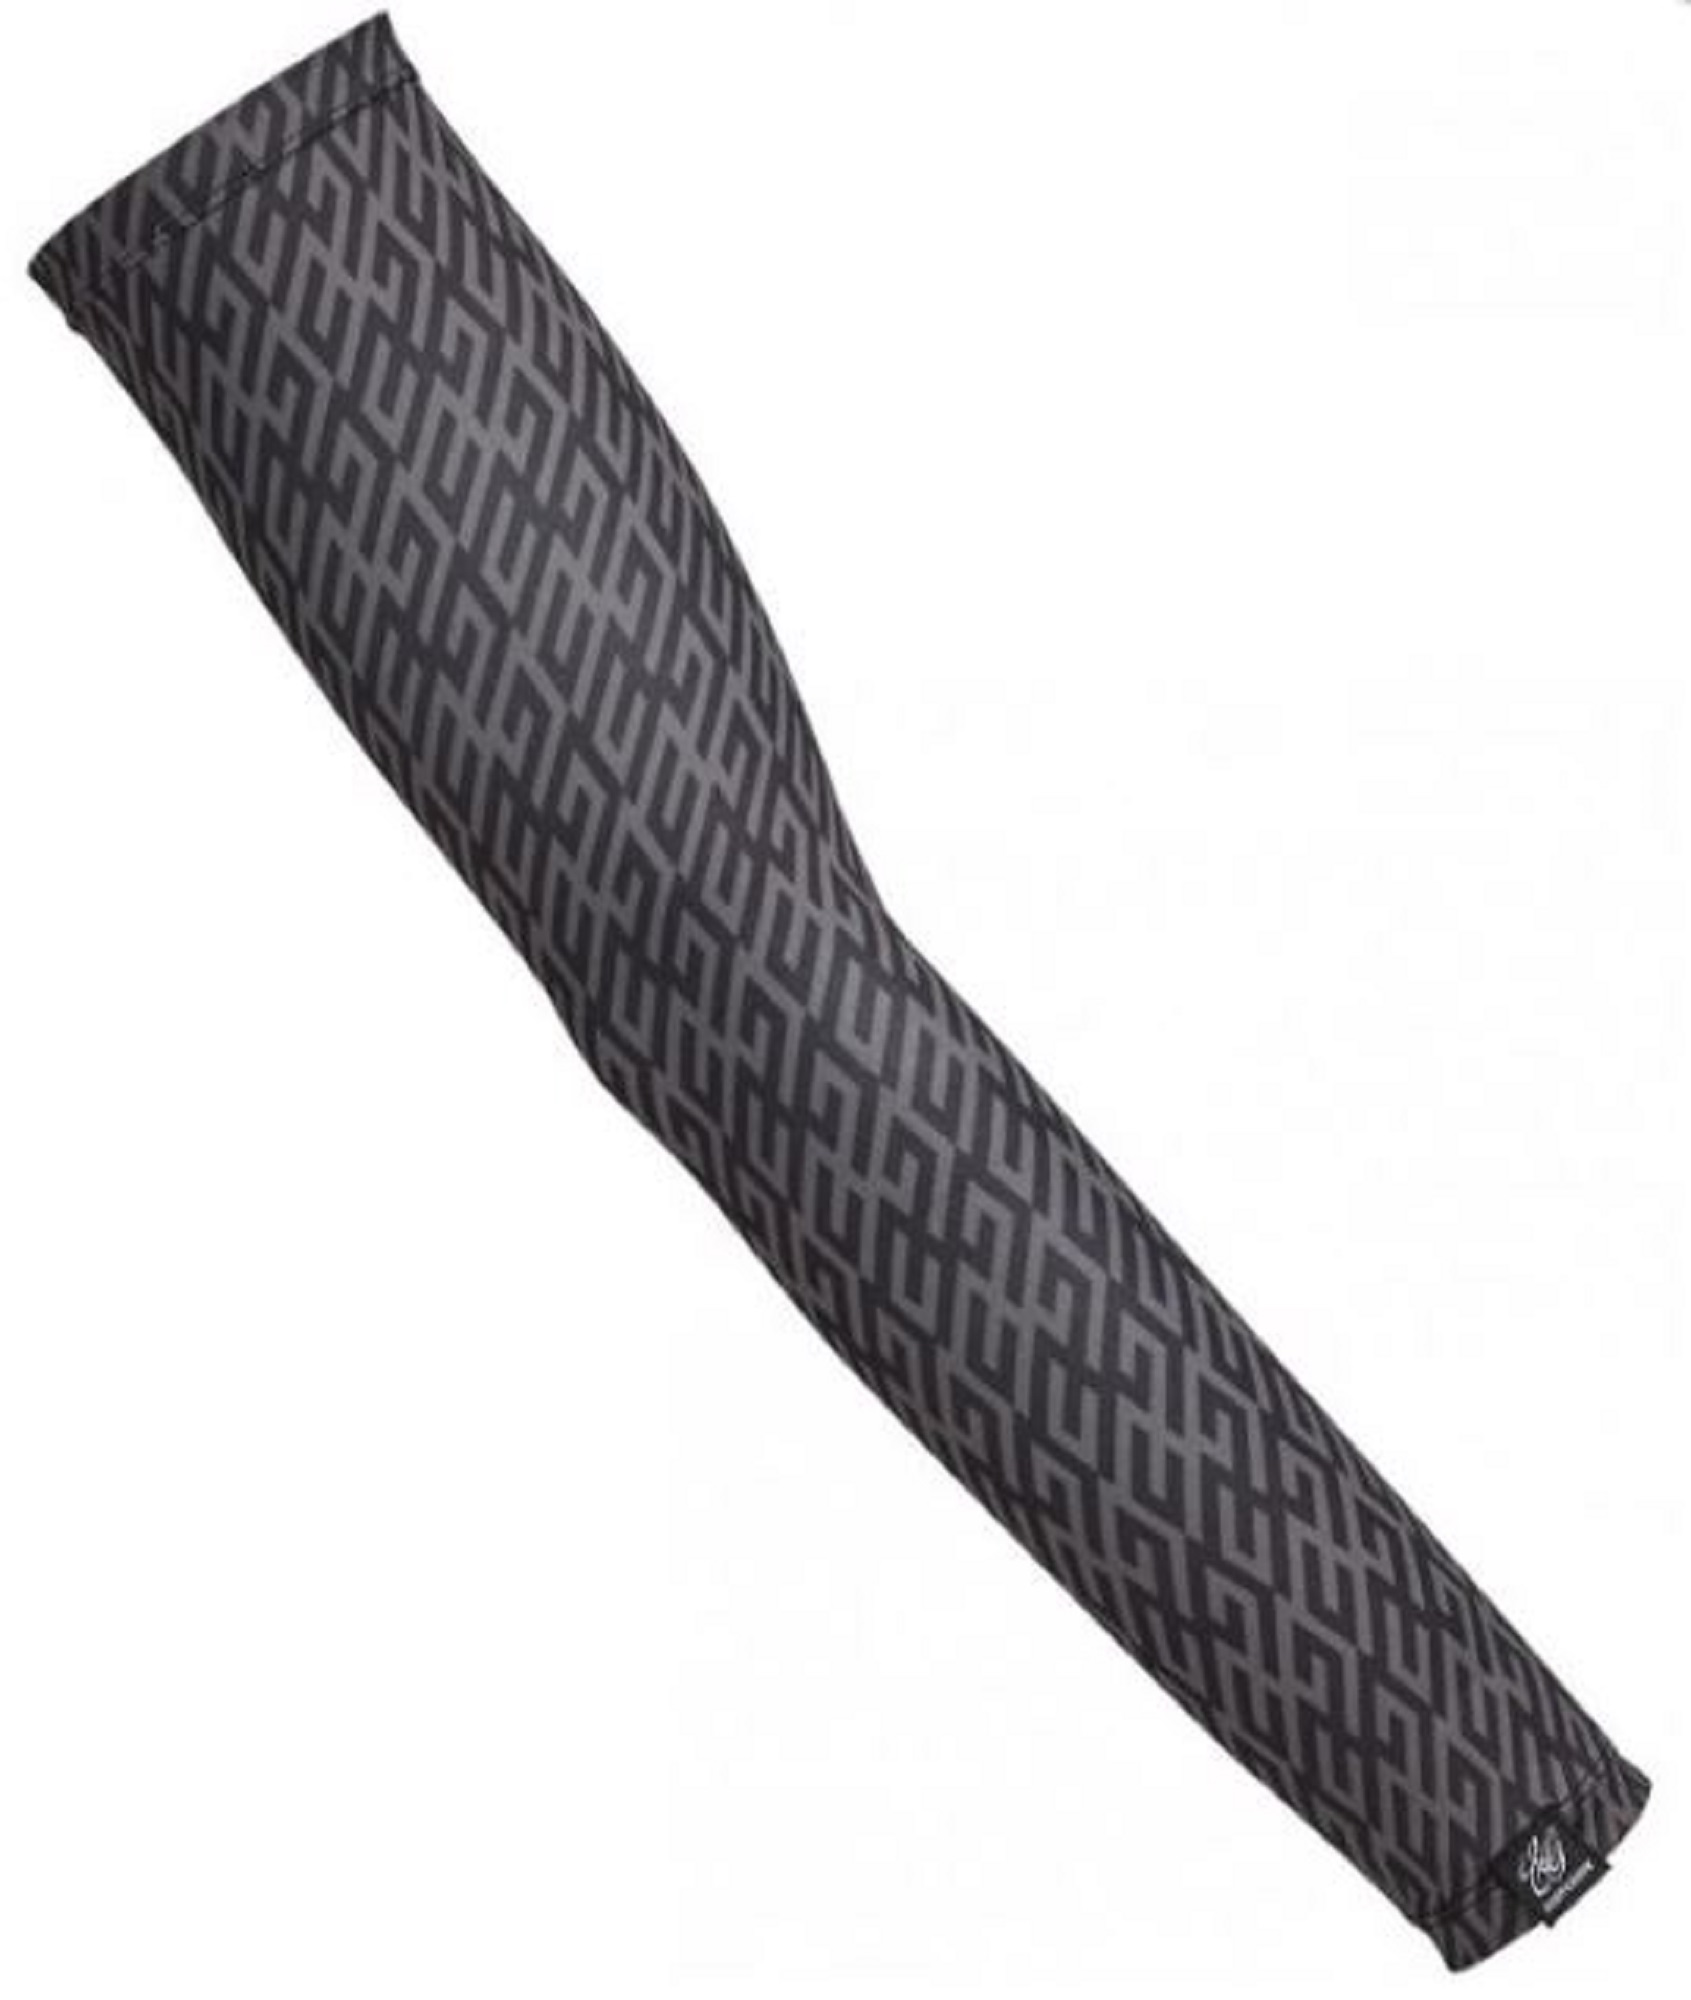 Evergreen Arm Sleeve Cover Size L EG Black (2223)